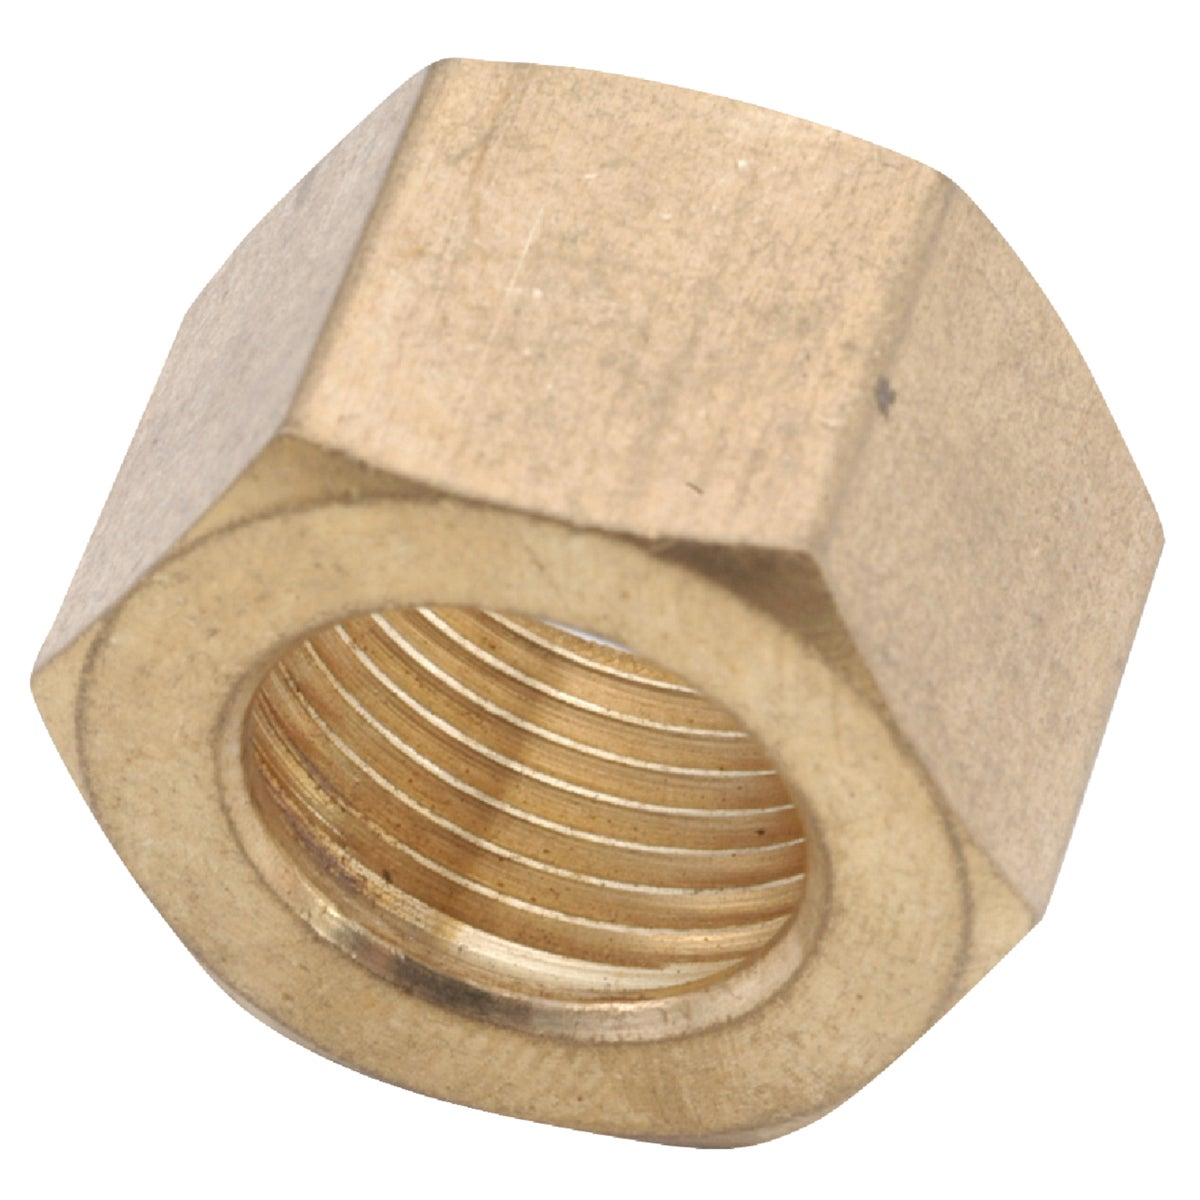 "3/8"" COMPRESSION NUT - 30061-06 by Anderson Metals Corp"